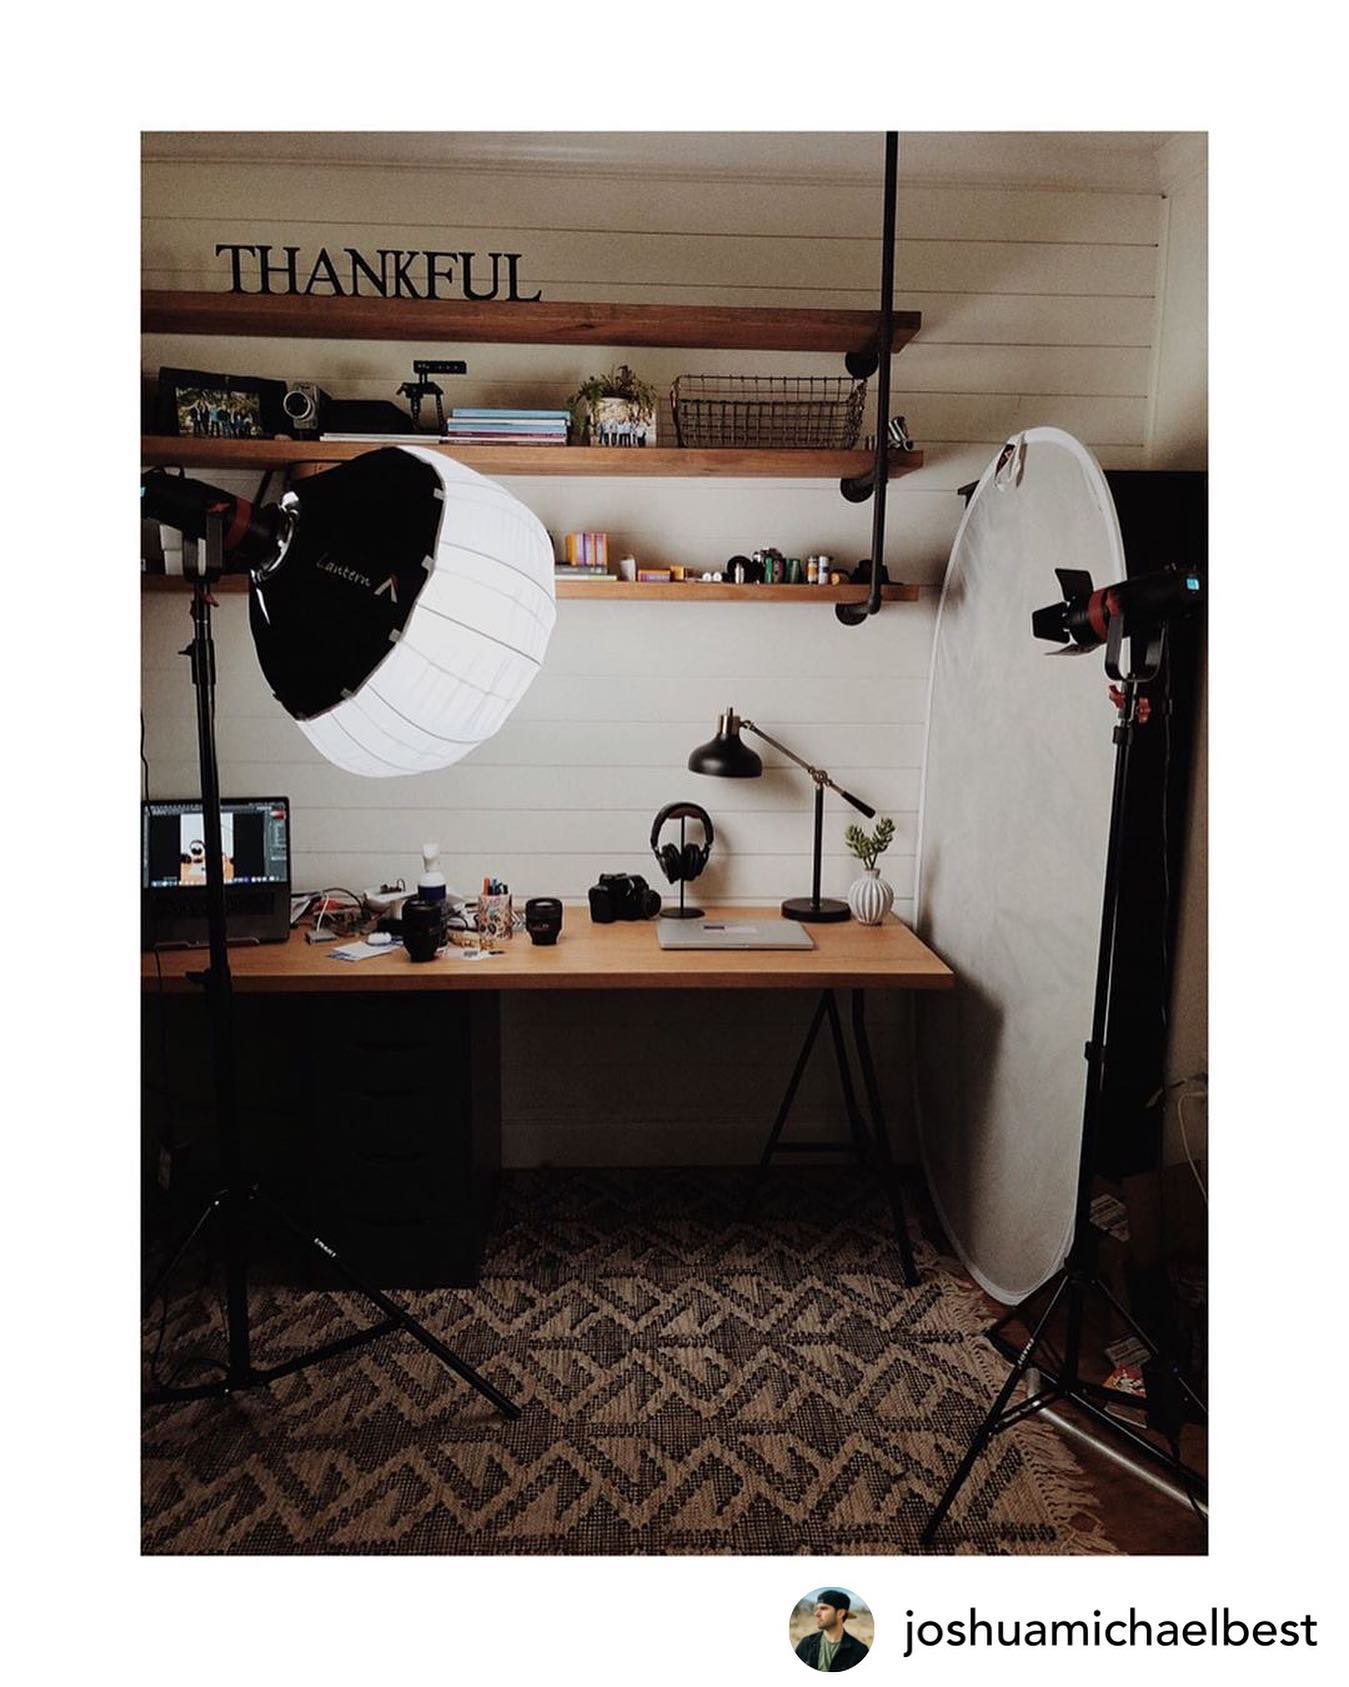 Instagram Joshuamichaelbest Shared This Pic Of His Home Office Lighting Setup Using Two Of Our Came Tv Boltzen 55w Led Lights Cametv Boltzen Led Ledlight Fresnel Fresnellight Cametvboltzen Boltzenled Came Tv Blog